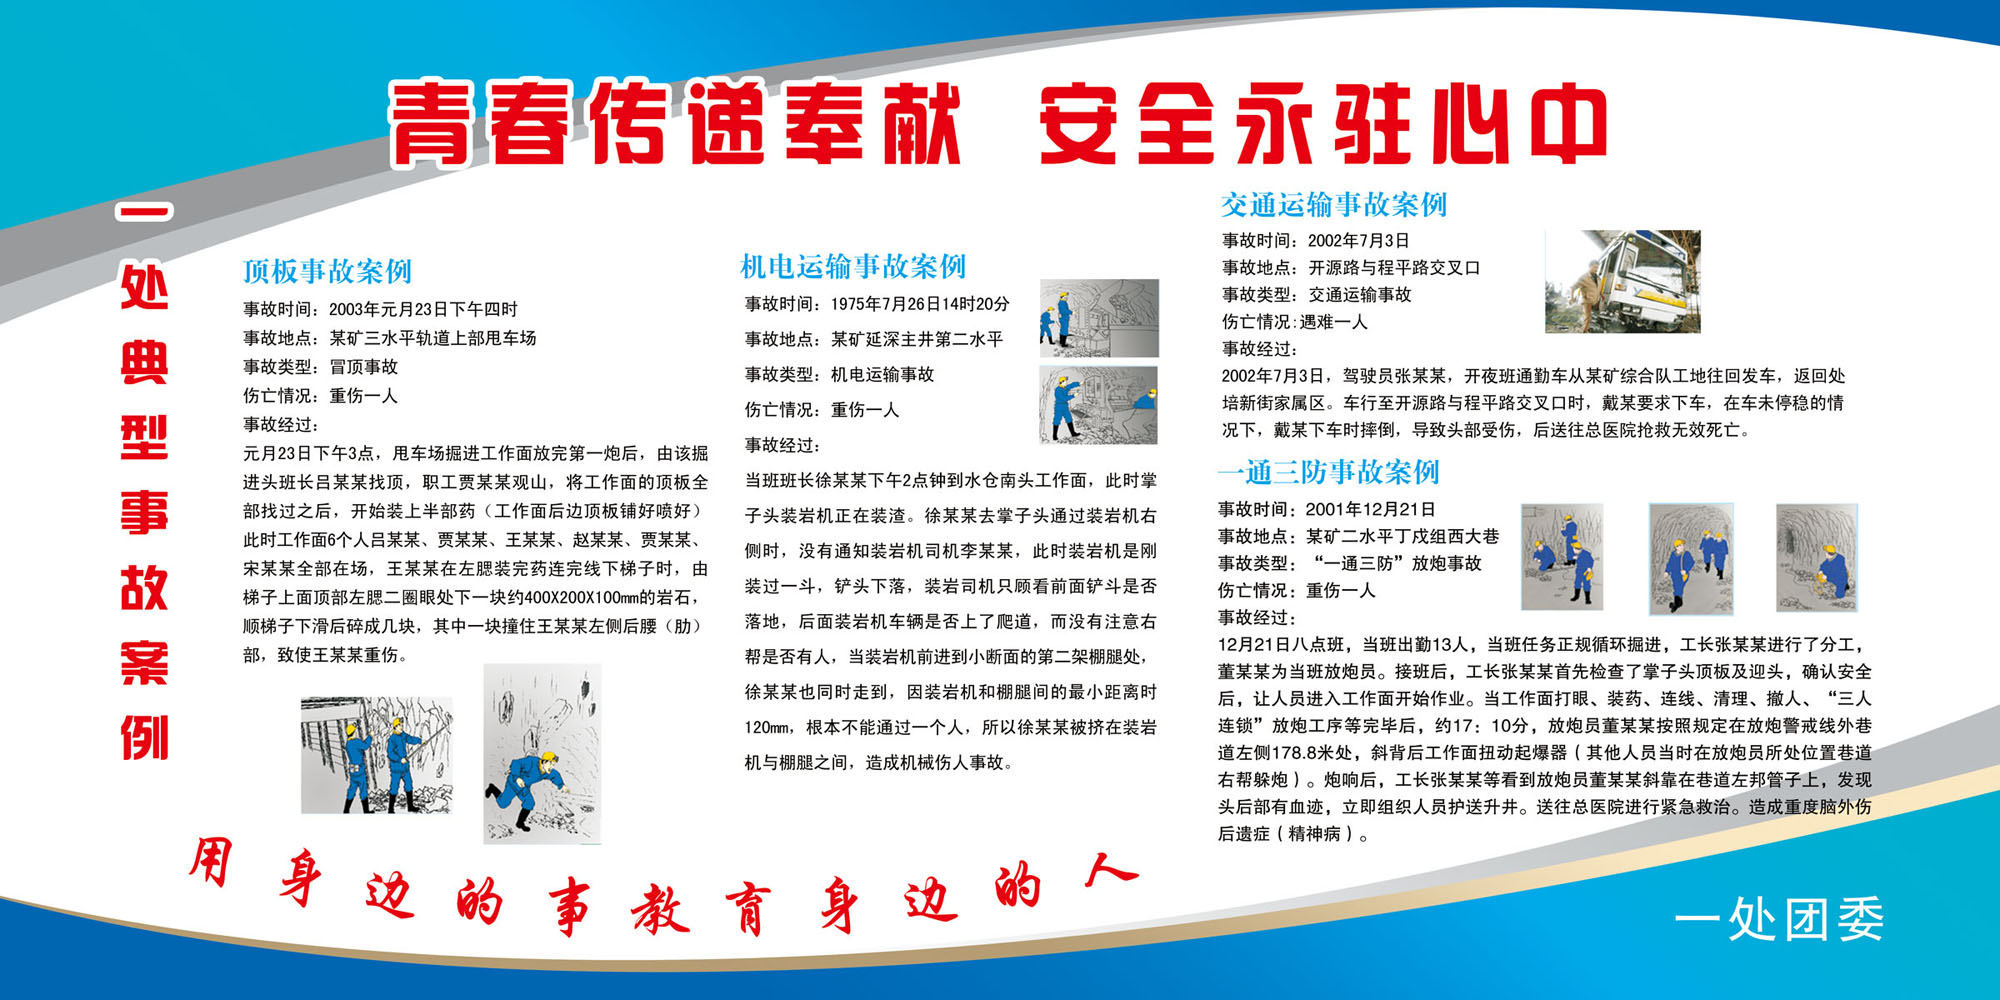 Poster printing poster printing 340 coal mine coal mine safety accident case billboards panels material 147 p